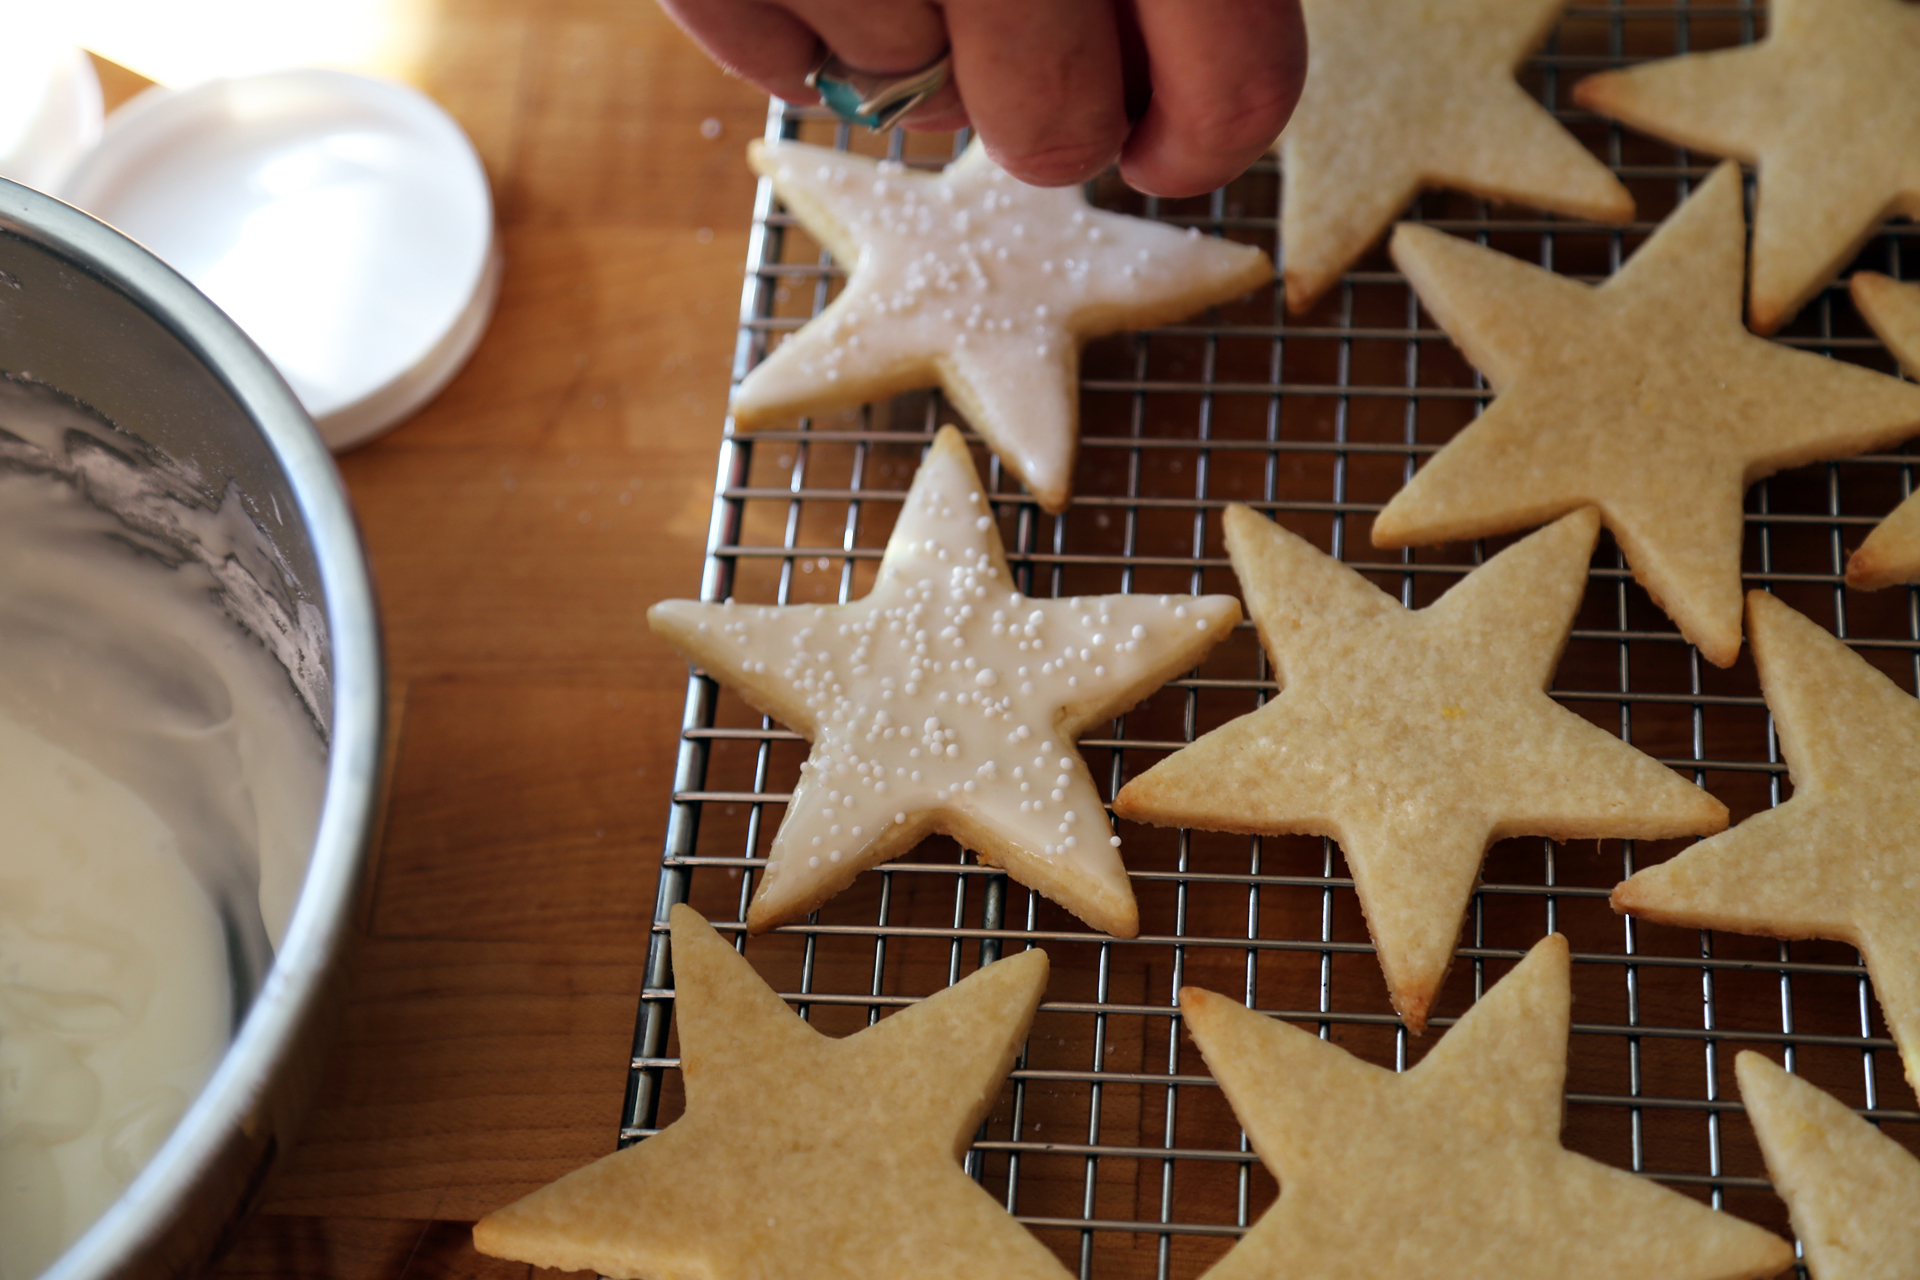 Sprinkle the lemon stars with a little sparkle sugar before the icing dries.